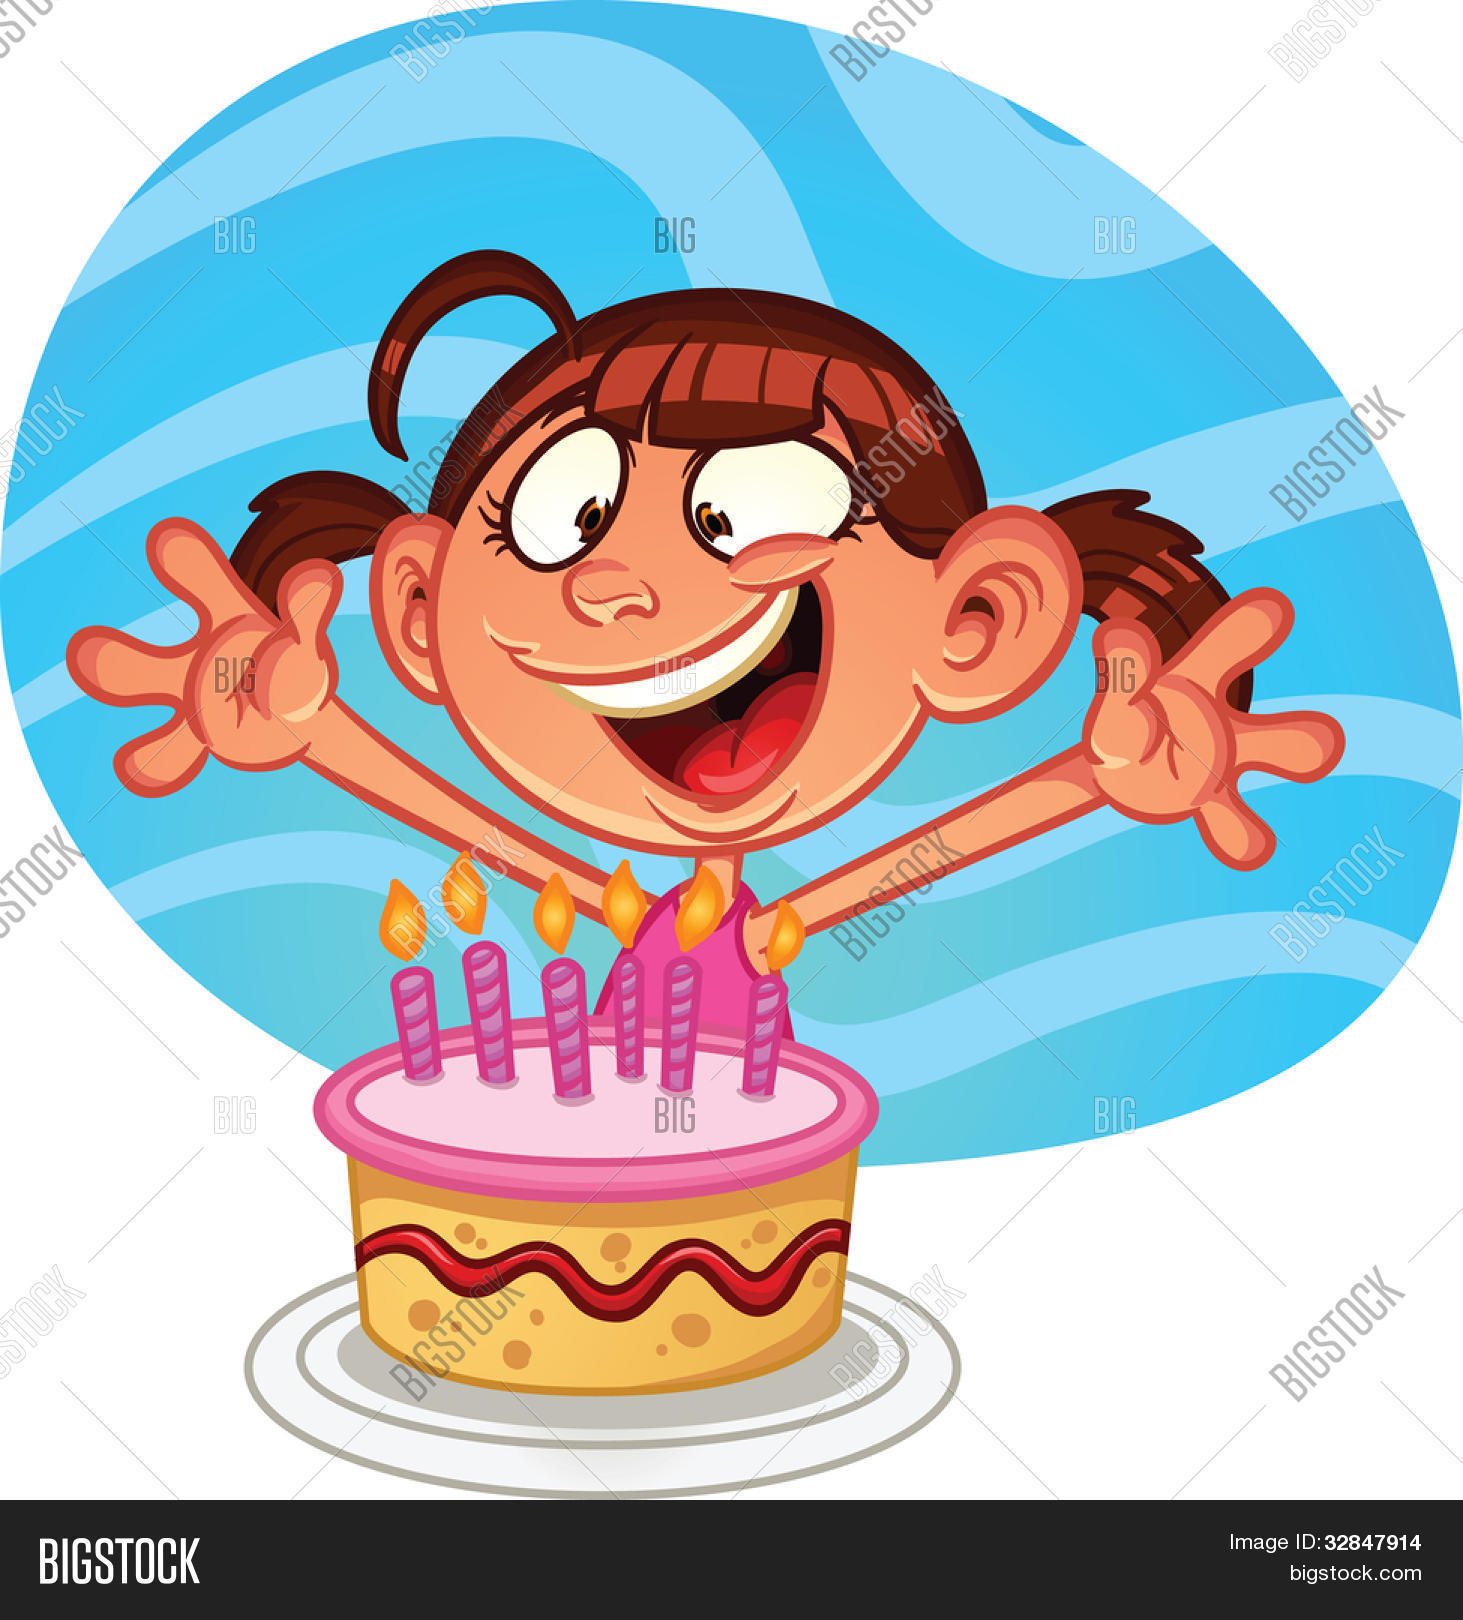 Swell Cute Cartoon Birthday Vector Photo Free Trial Bigstock Funny Birthday Cards Online Inifodamsfinfo